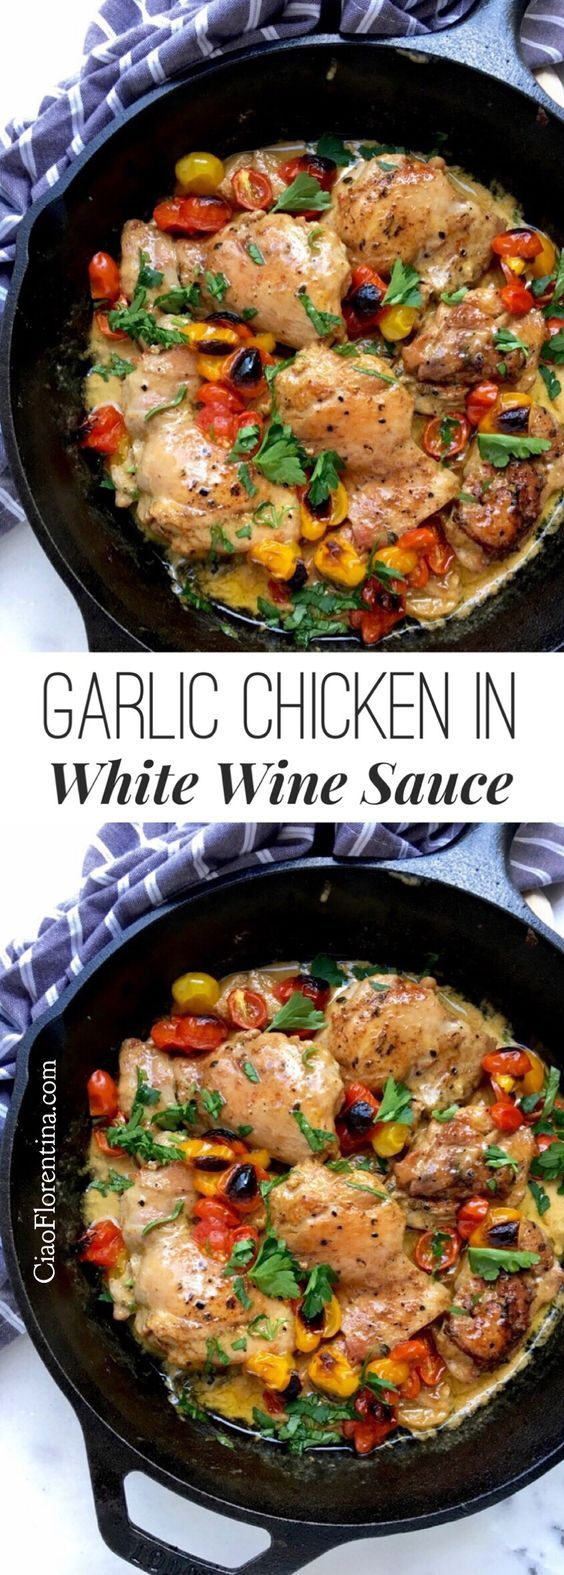 Garlic Chicken in White Wine Sauce